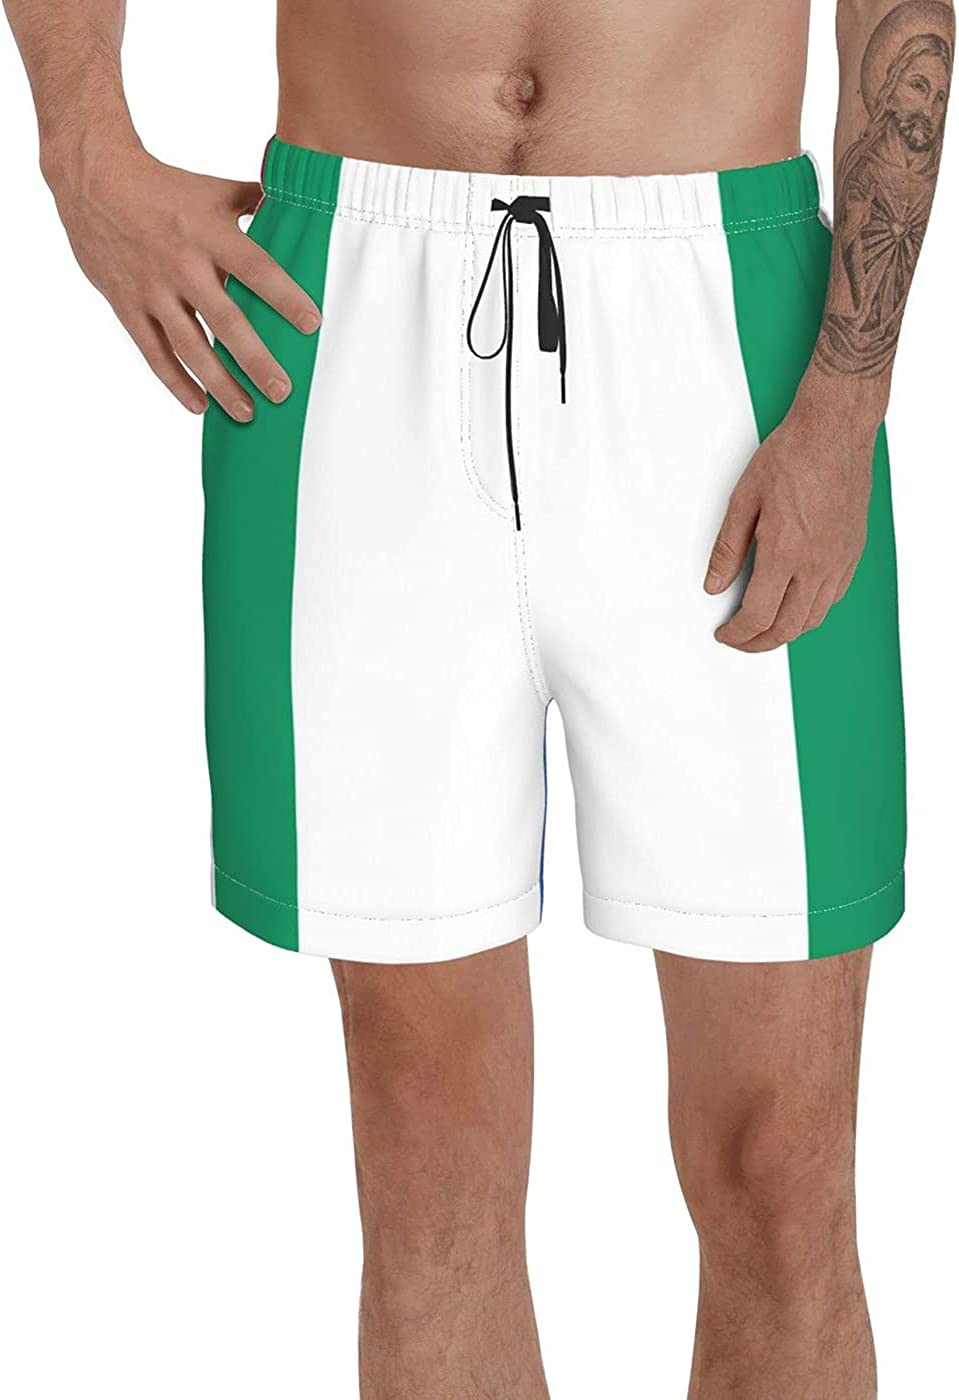 Count Nigeria Flag Men's 3D Printed Funny Summer Quick Dry Swim Short Board Shorts with